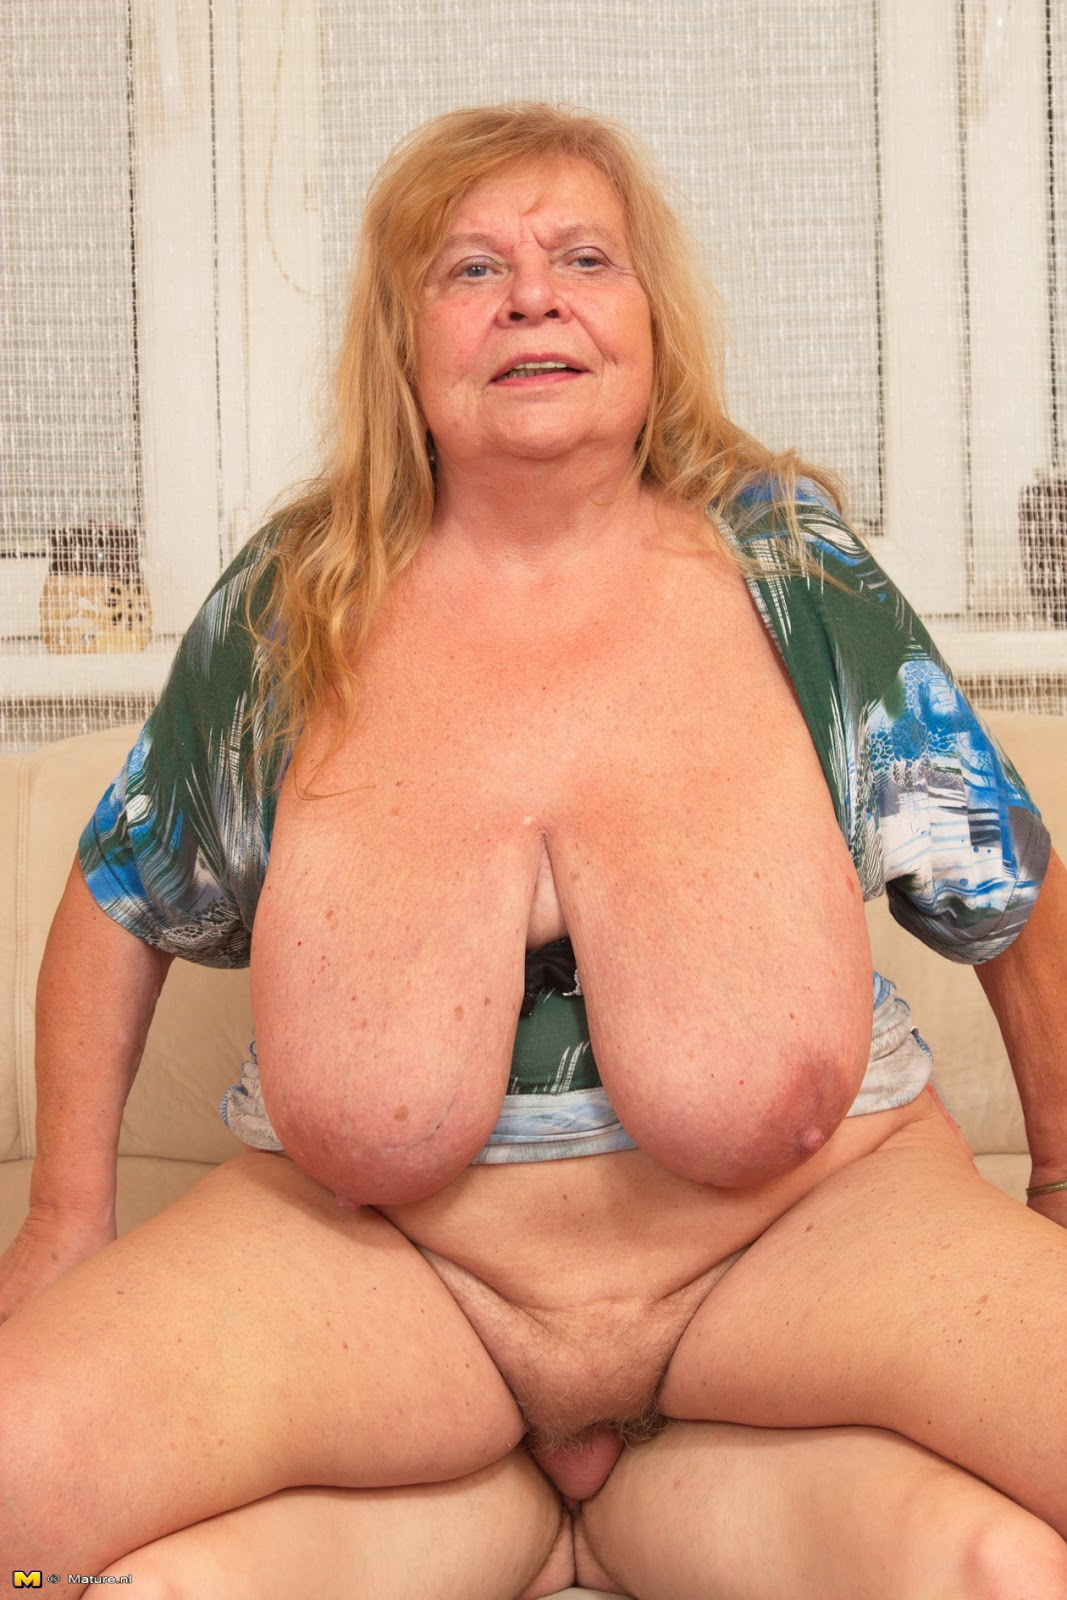 fat naked old grannies     Wow granny   what nice big breasts